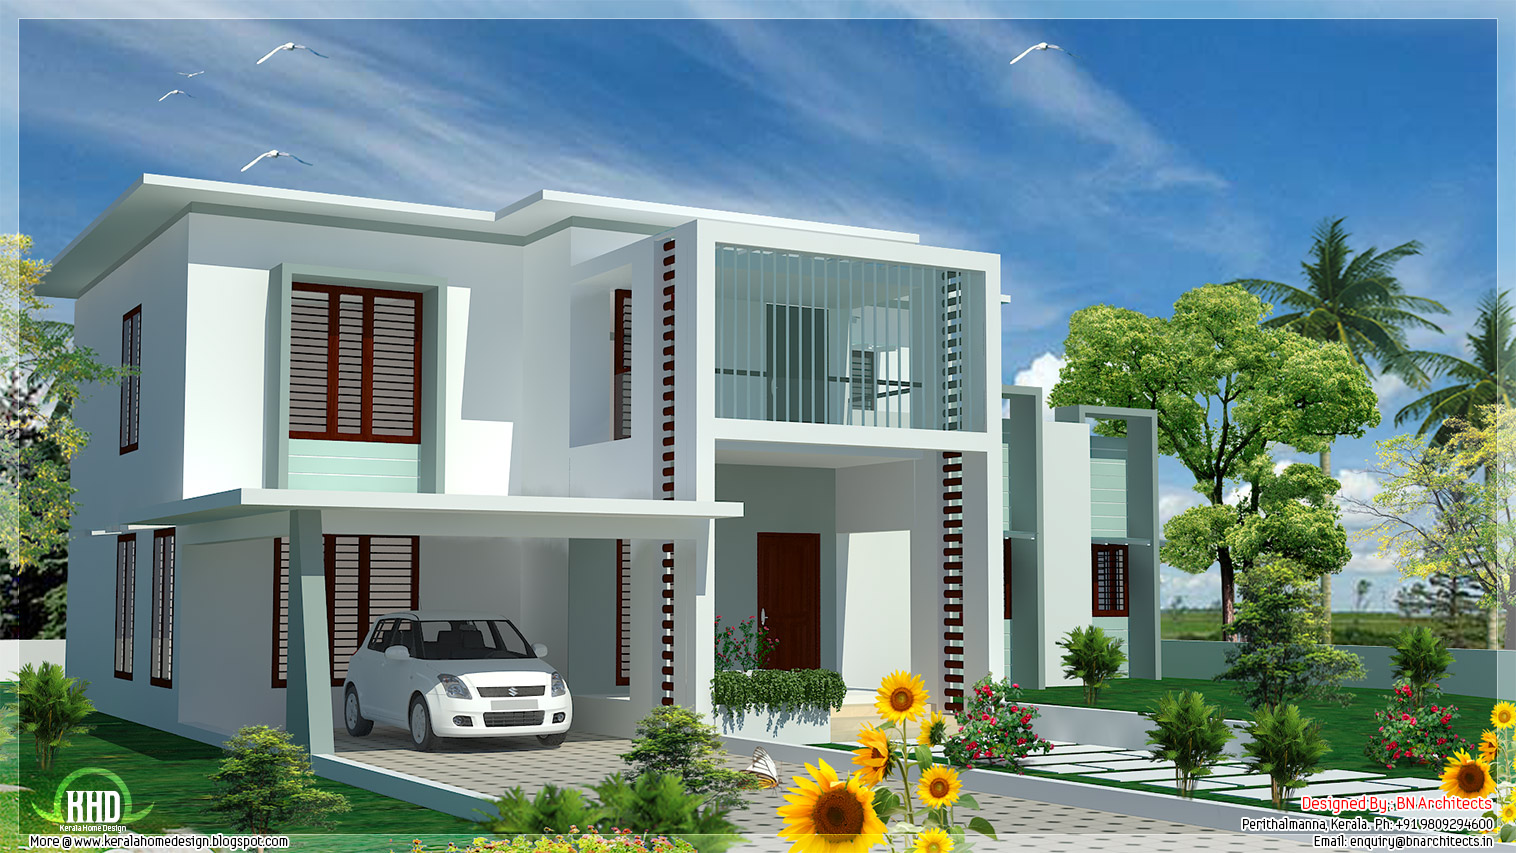 4 bedroom modern flat roof house kerala home design and for House plans for flats